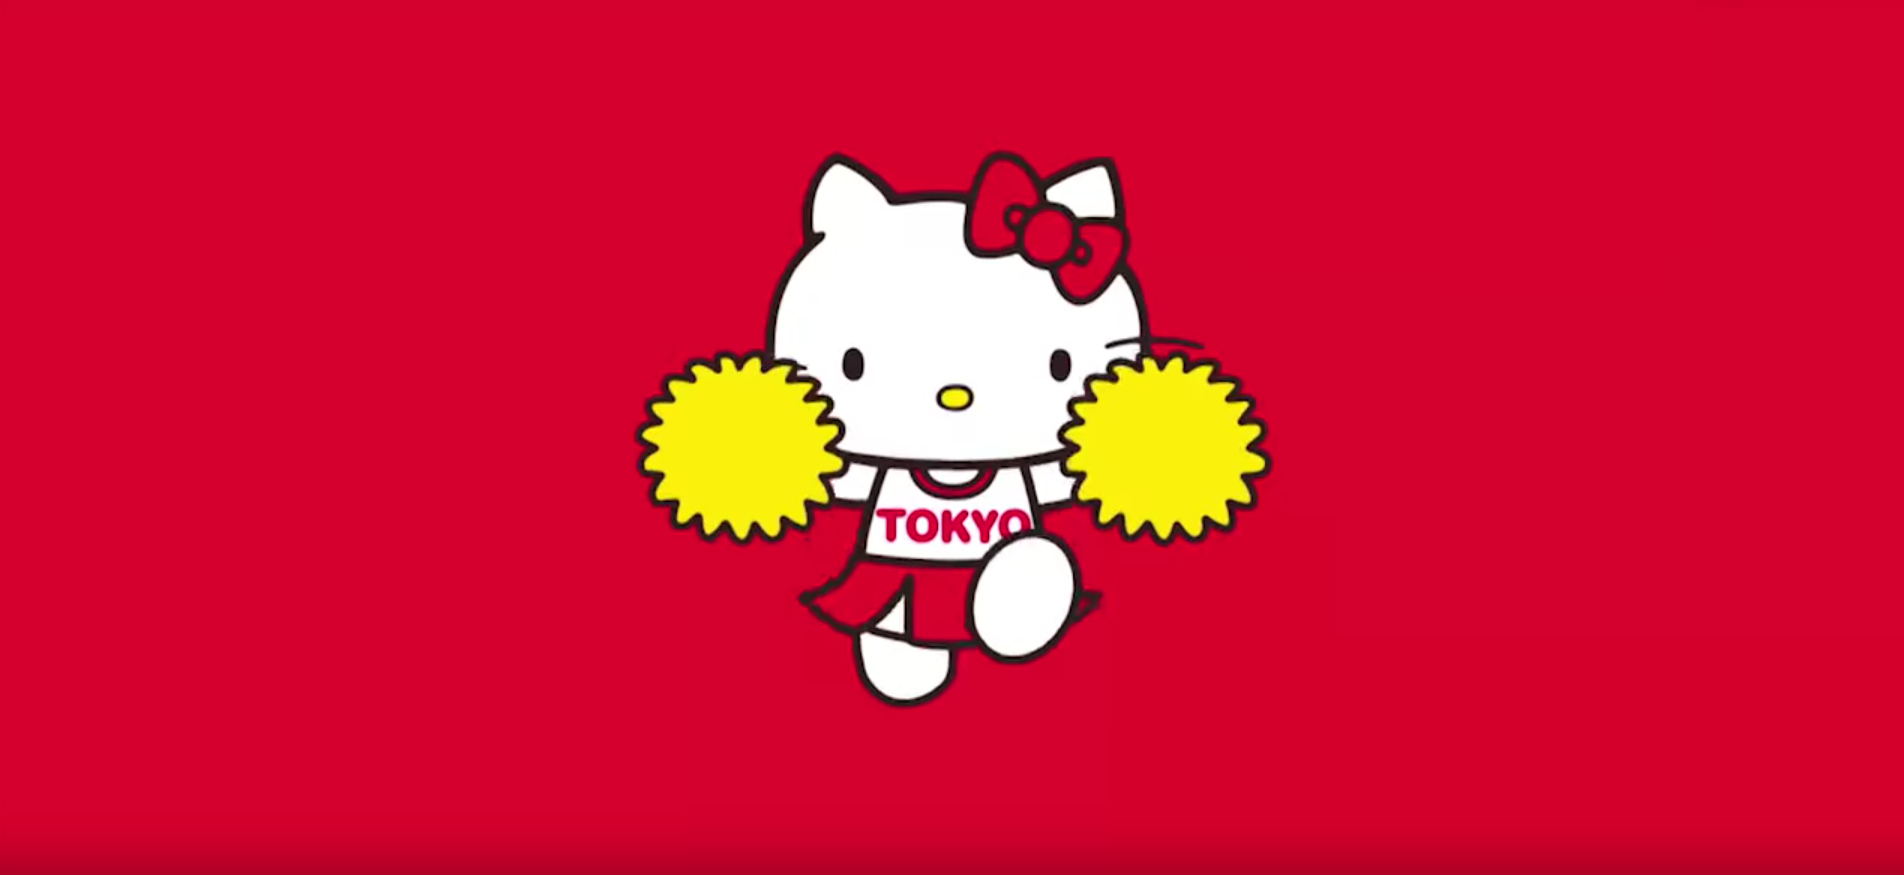 Tokyo 2020 Could Be The Geekiest Olympics Yet